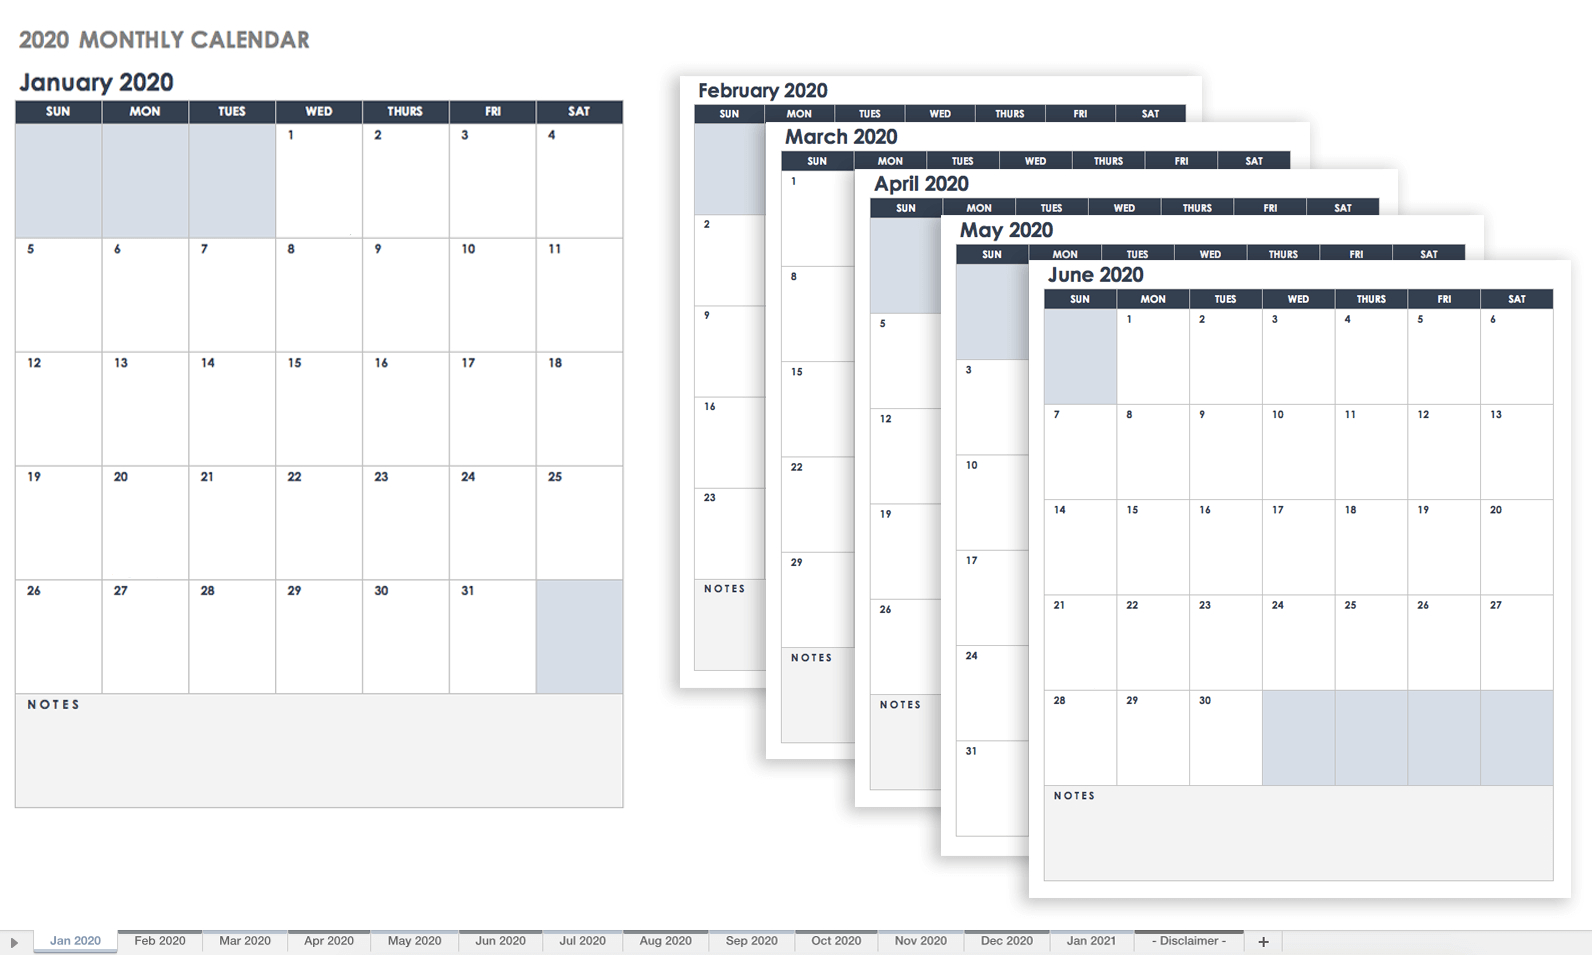 Free Google Calendar Templates | Smartsheet in Week At A Glance 2019-2020 Printable Free